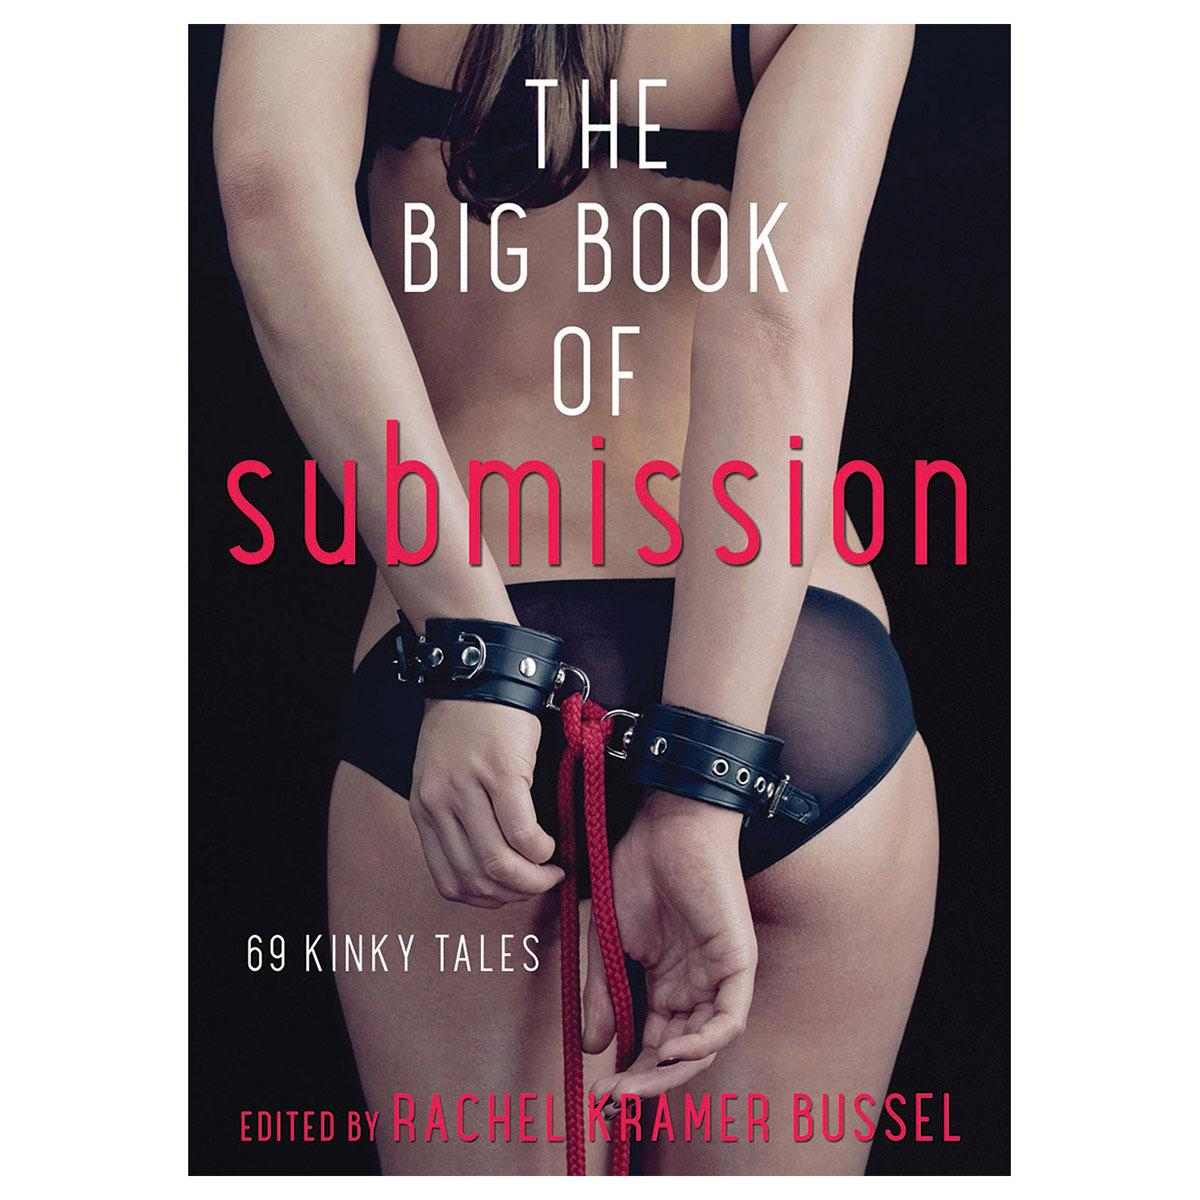 Big Book of Submission - VixenAndStag